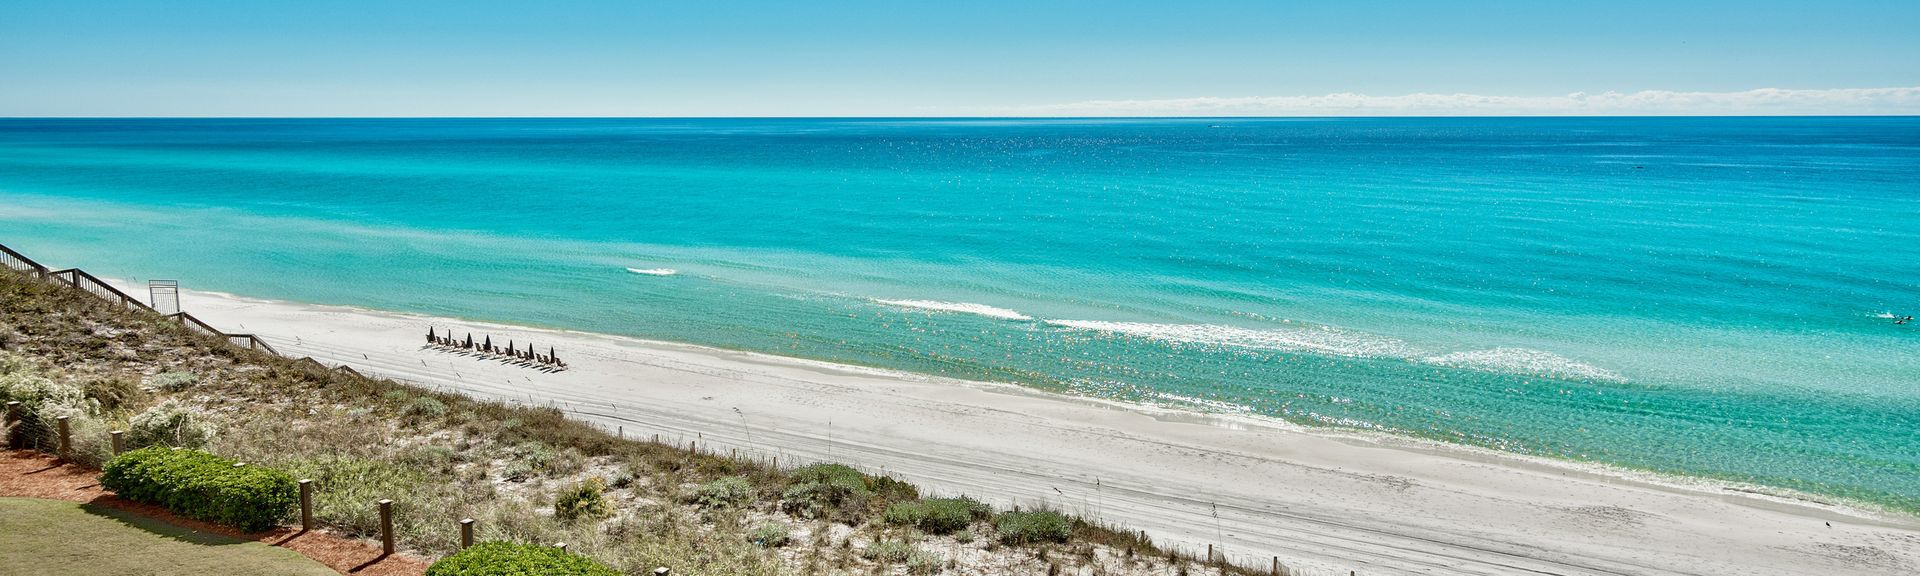 Lakeside at Blue Mountain Beach, Santa Rosa Beach, Florida, Estados Unidos